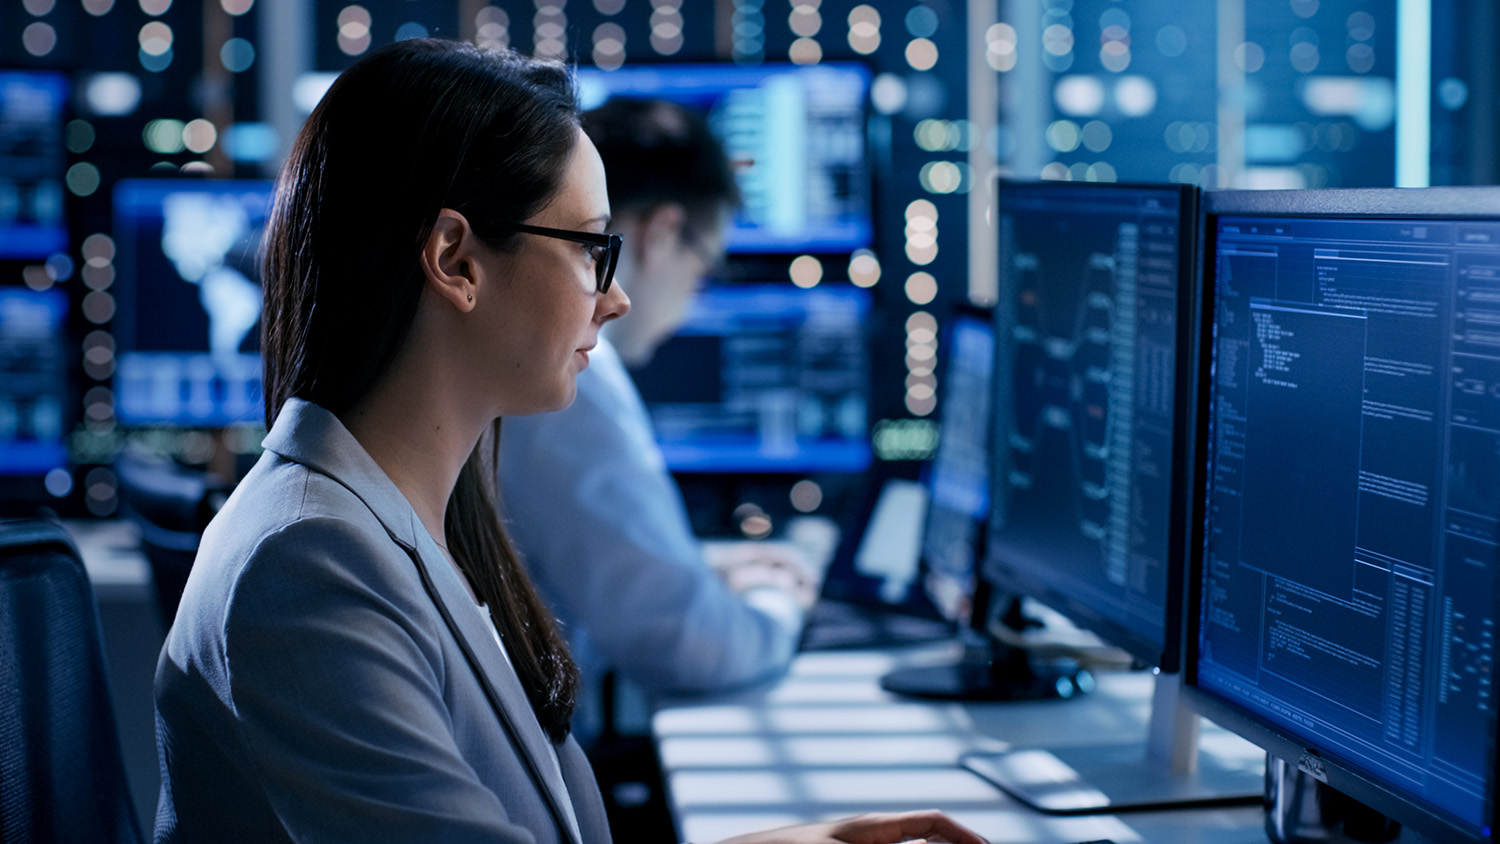 The U.S. Bureau of Labor Statistics projects a 31% growth rate for information security analysts from 2019-29, far exceeding the national average for all occupations.